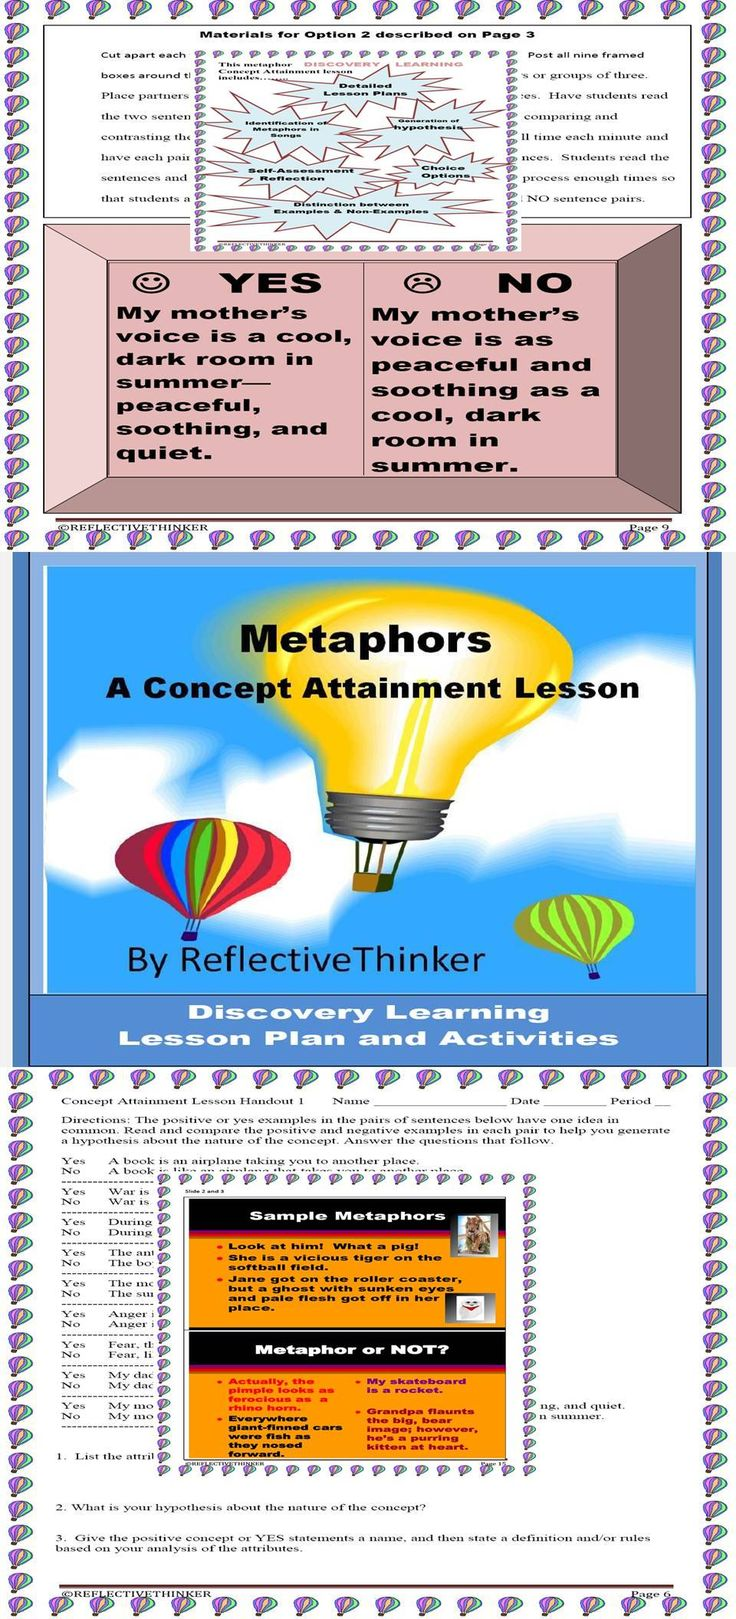 metaphors of critical thinking The present study introduced an innovative metaphor-oriented activity developing critical thinking in academic writing through a metaphor elicitation technique.